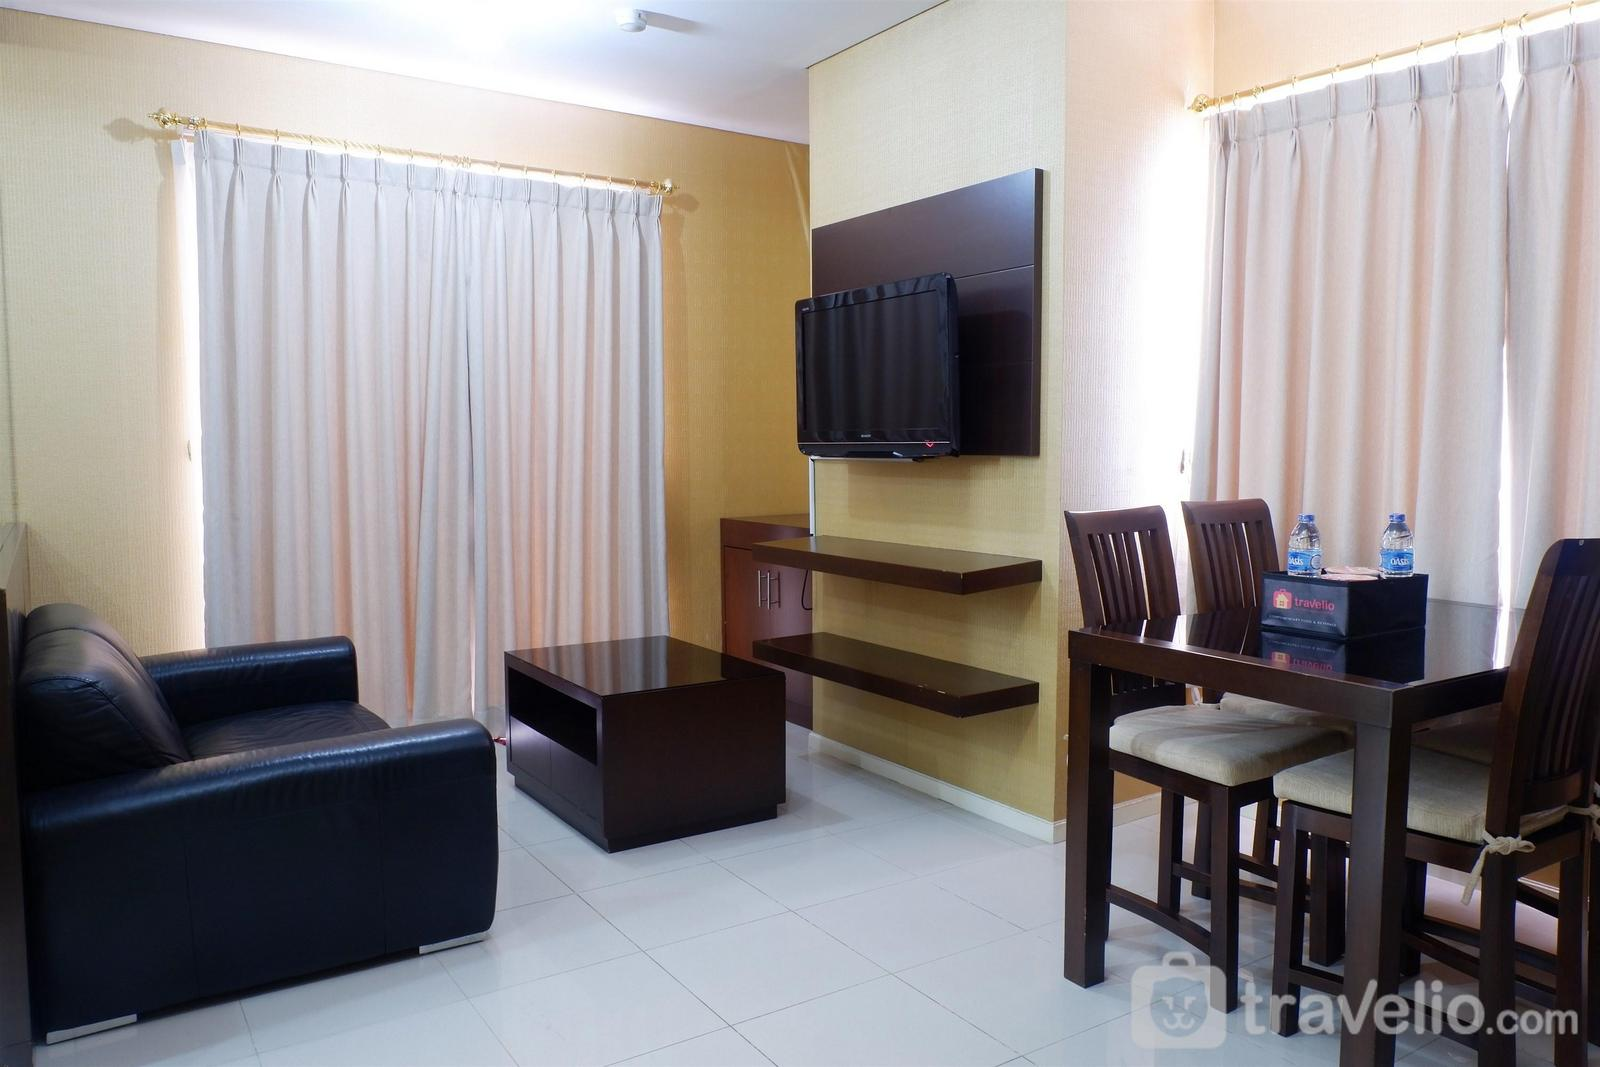 Cosmo Terrace Thamrin - 2BR Cosmo Terrace Apartment with Direct Access to Thamrin City Mall By Travelio